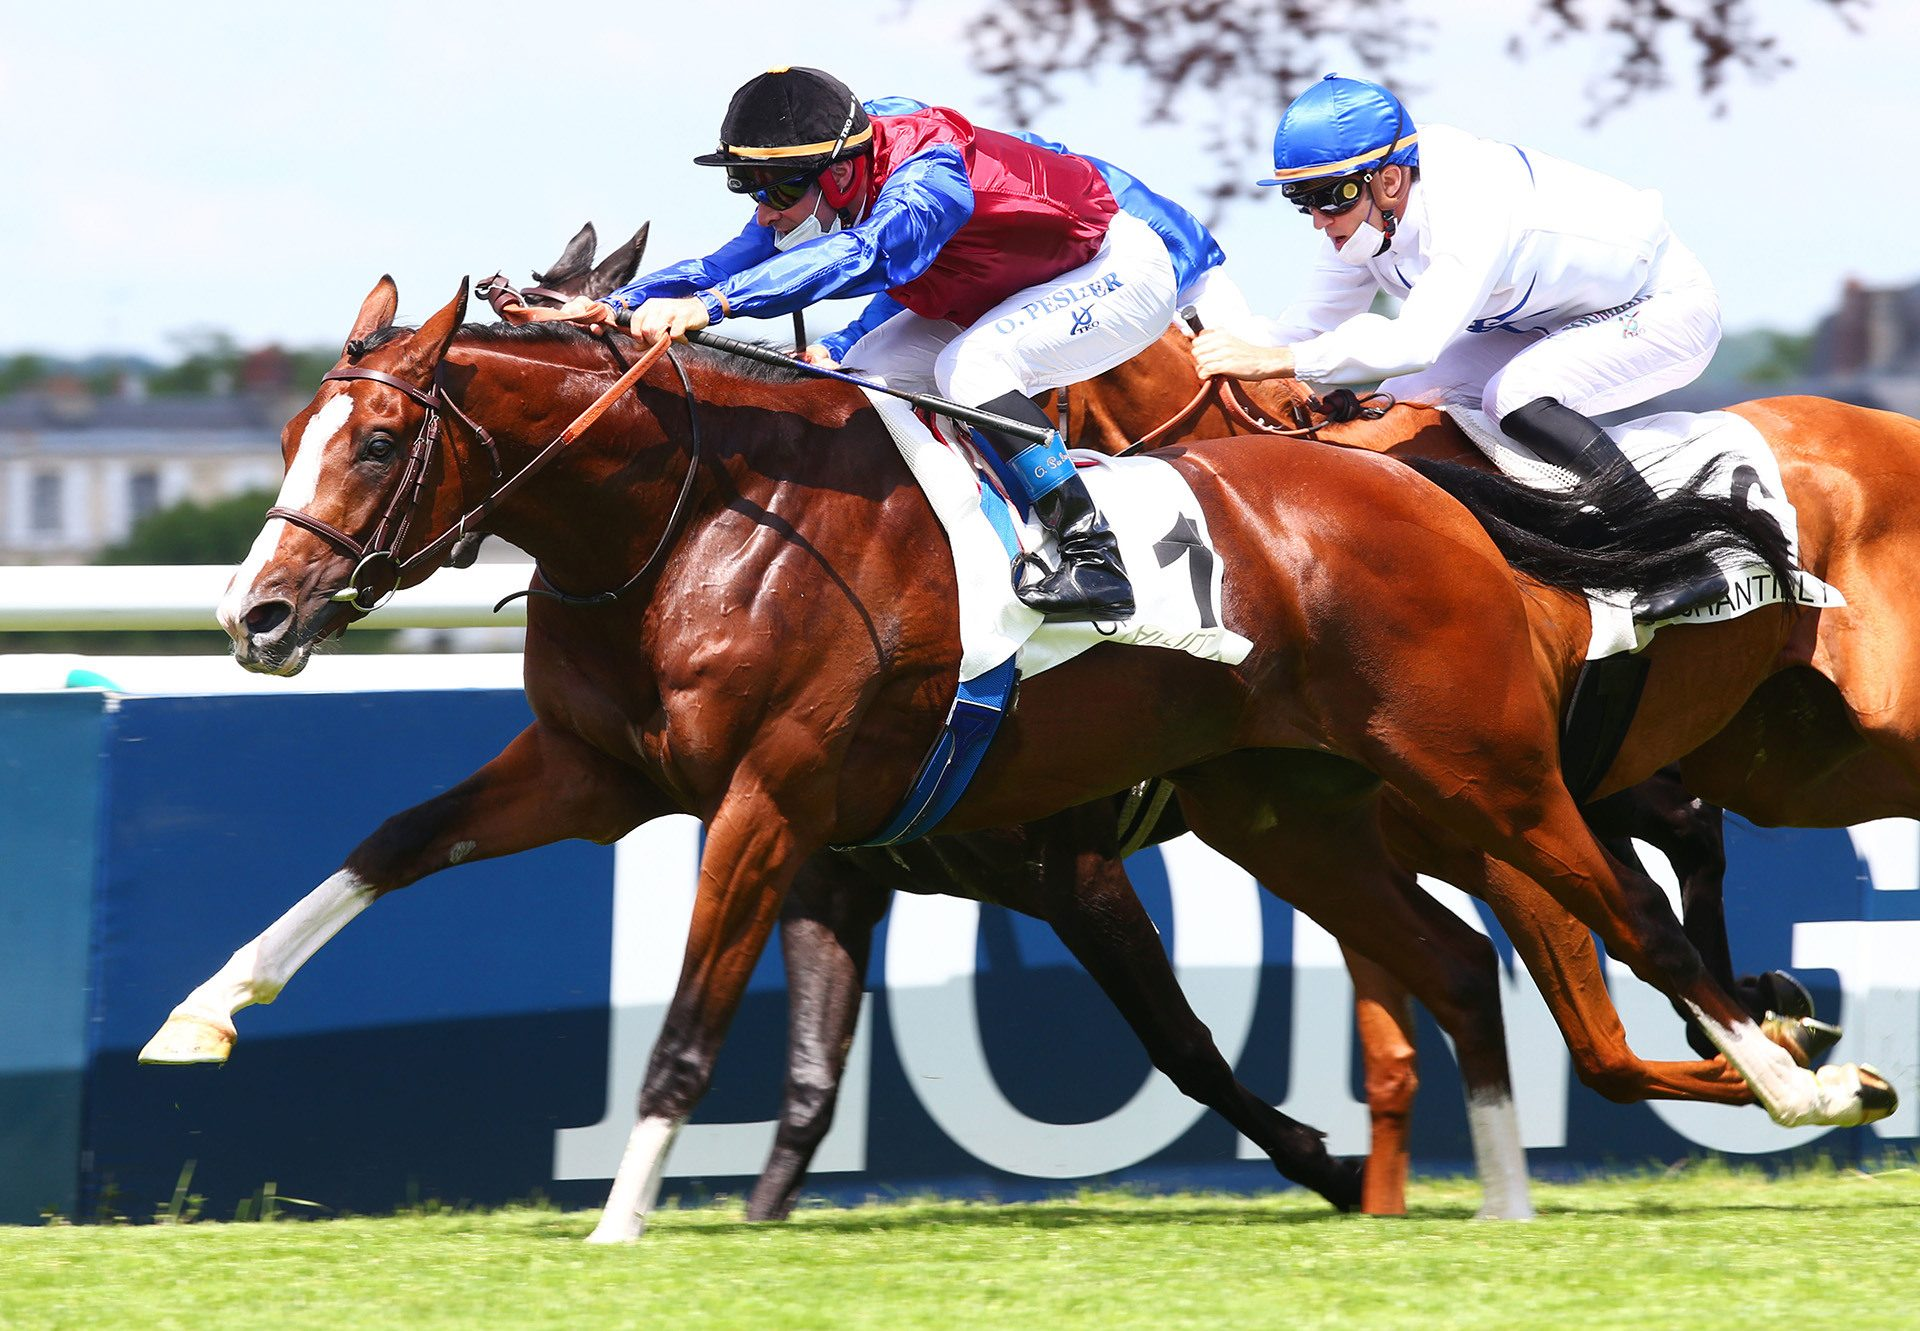 Holy Snow (Fastnet Rock) winning the G3 Autumn Stakes at Caulfield